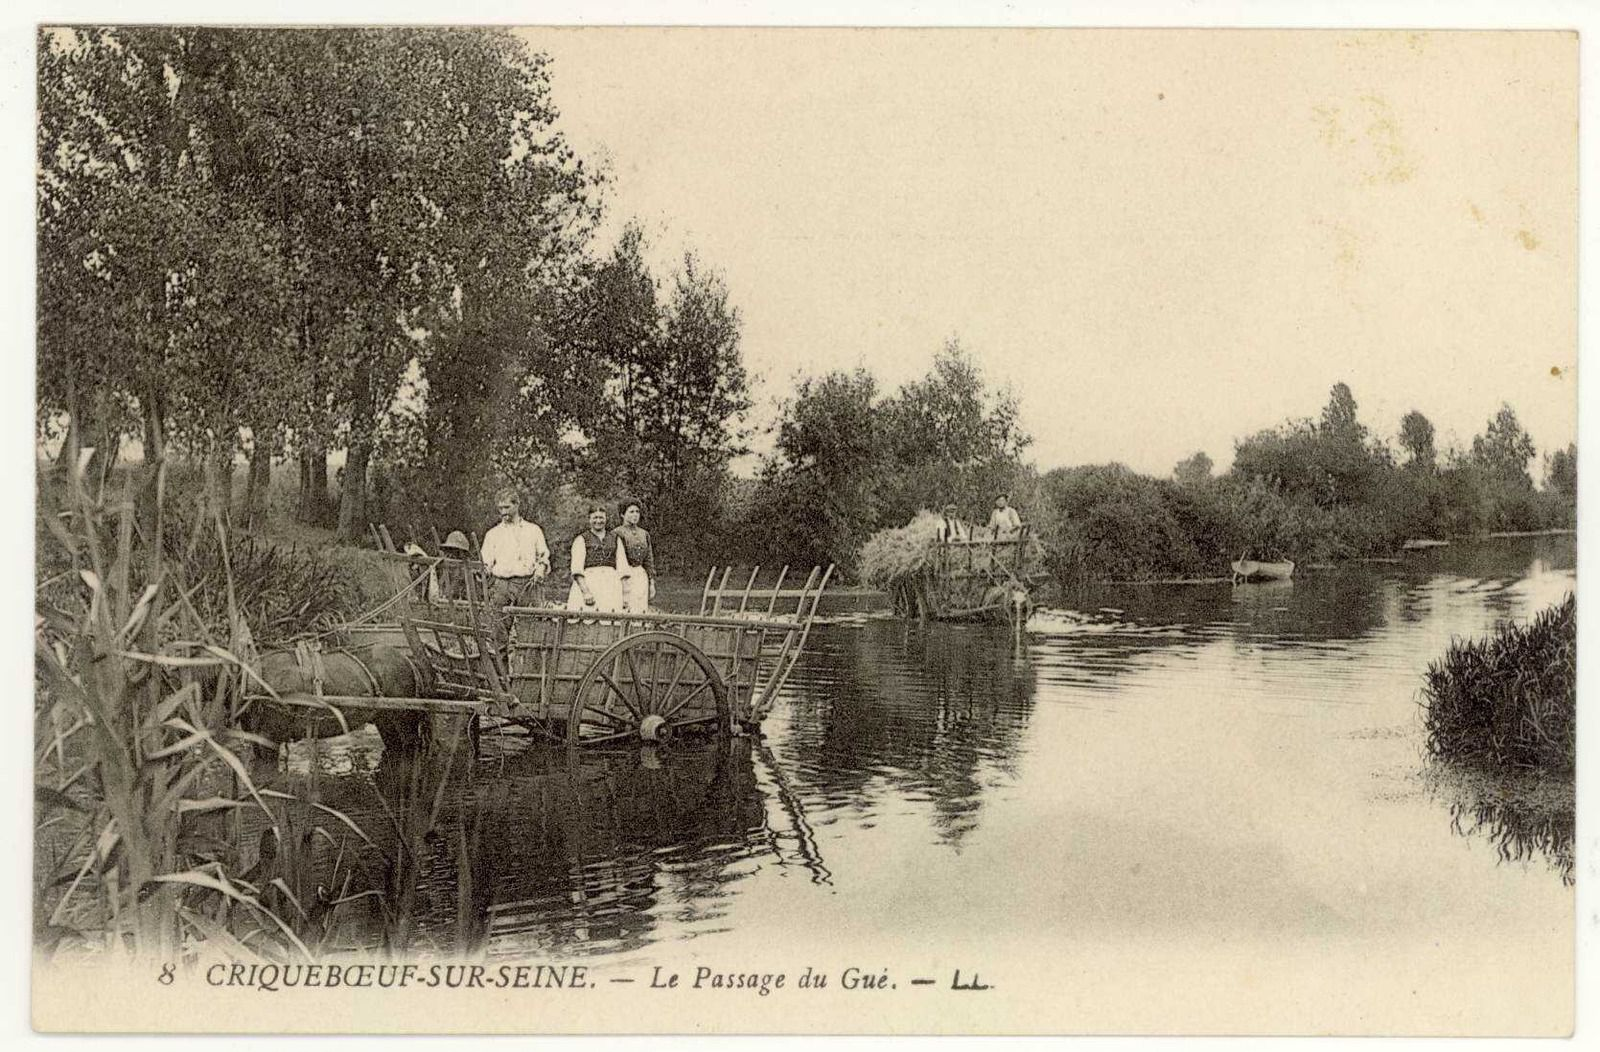 Cartes postales issues des fonds des Archives départementales de l'Eure.